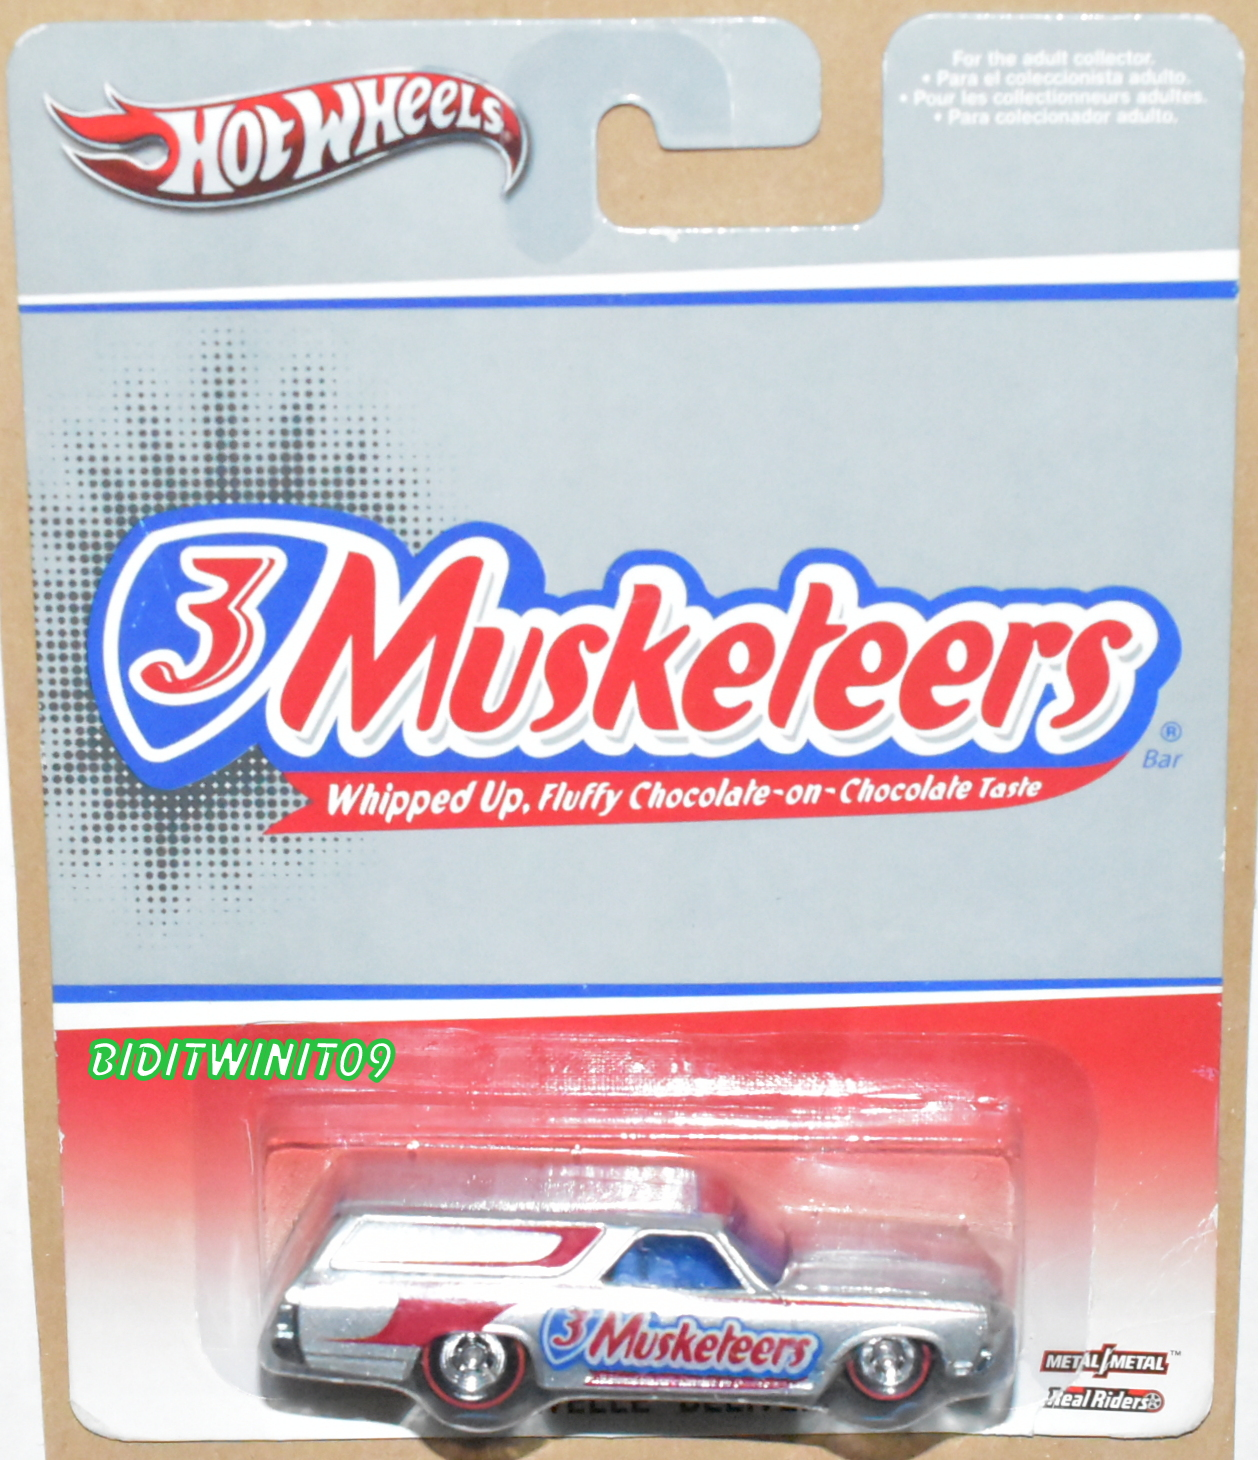 HOT WHEELS POP CULTURE 3 MUSKETEERS '70 CHEVELLE DELIVERY E+